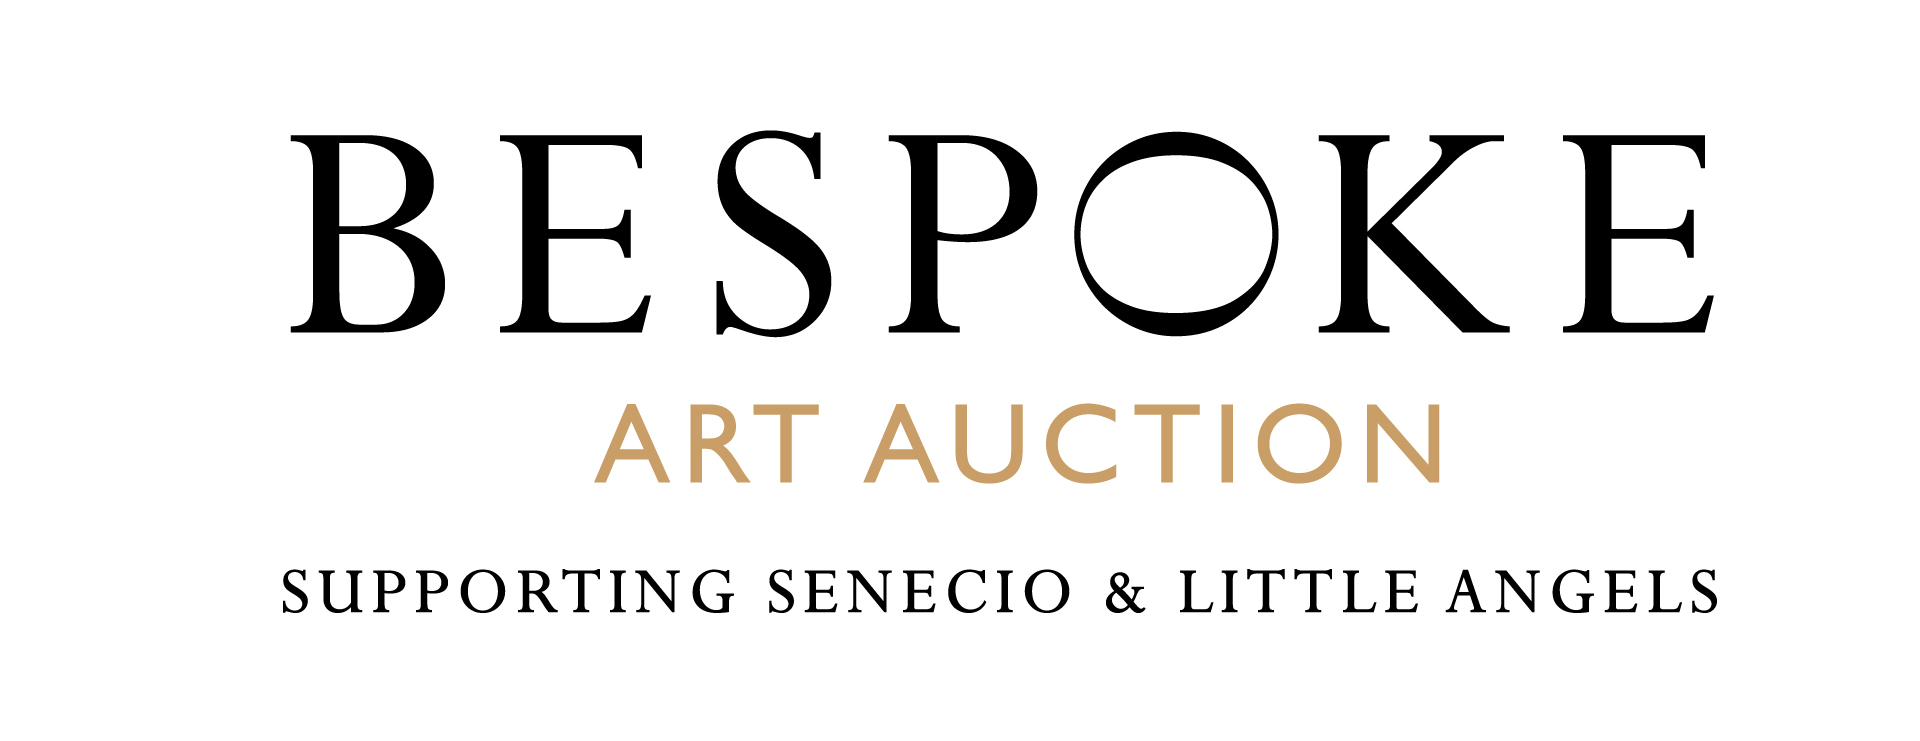 Idiom is proud to host Bespoke Art Auction & Gala Luncheon